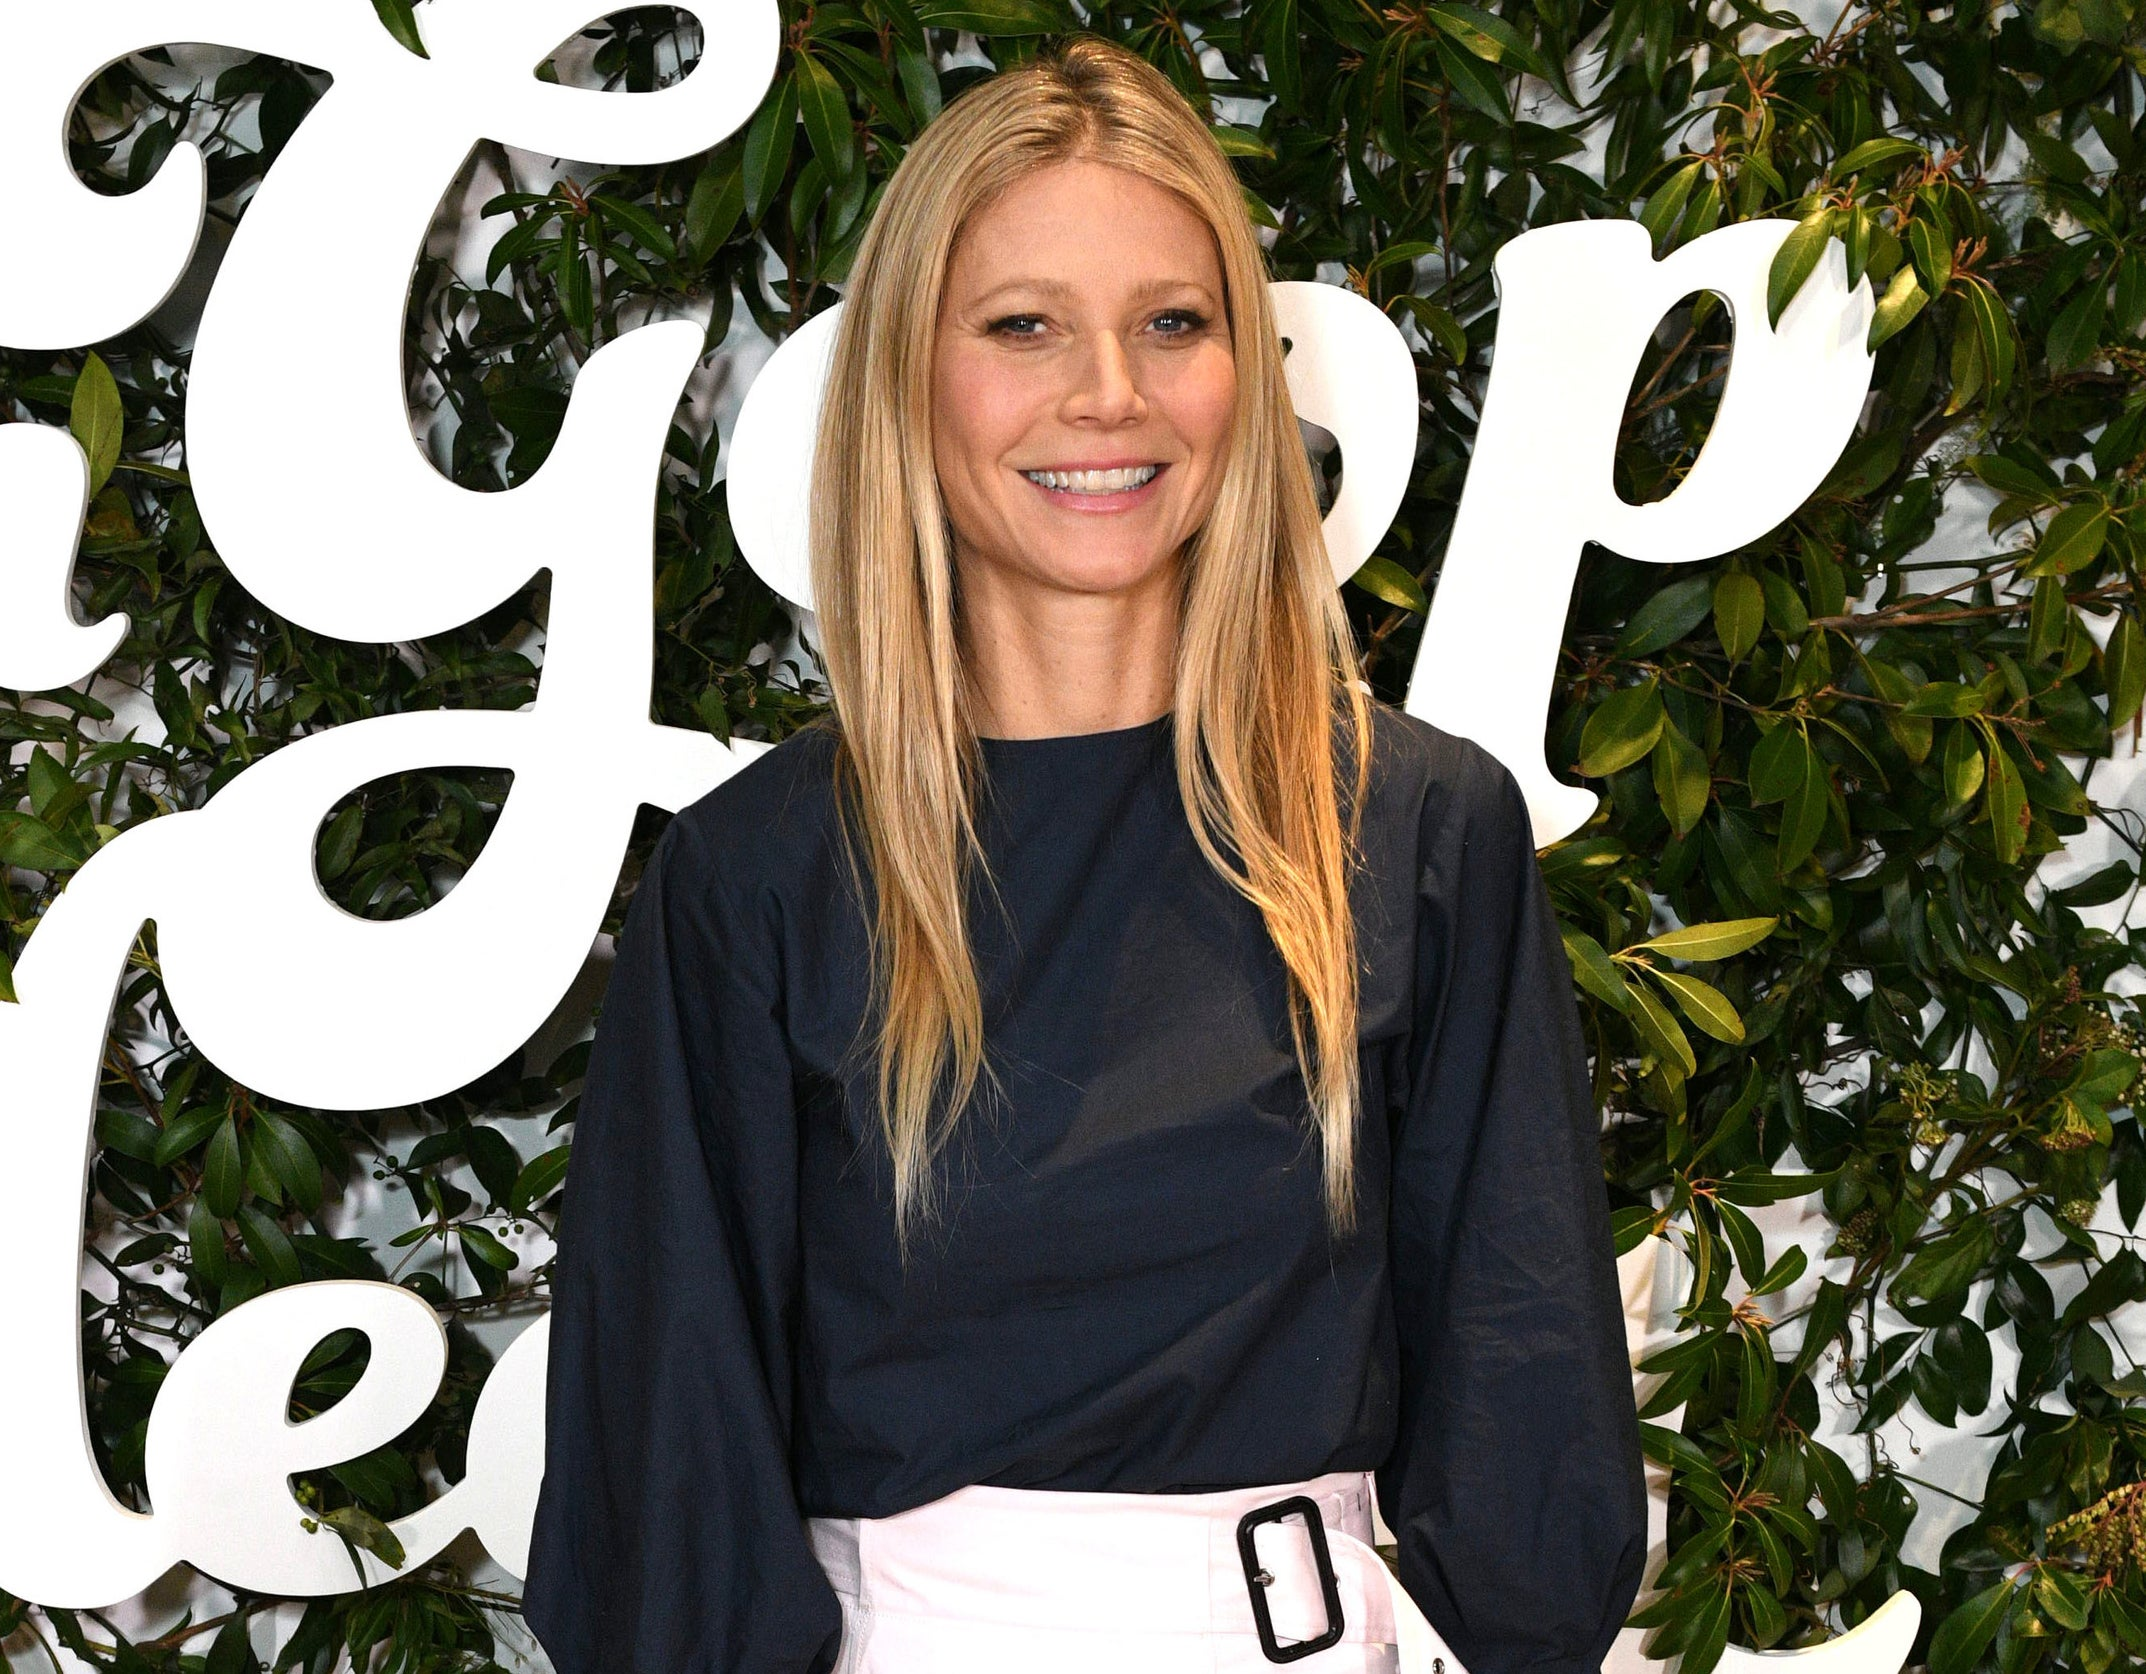 Gwyneth smiles in a black blouse at a recent event